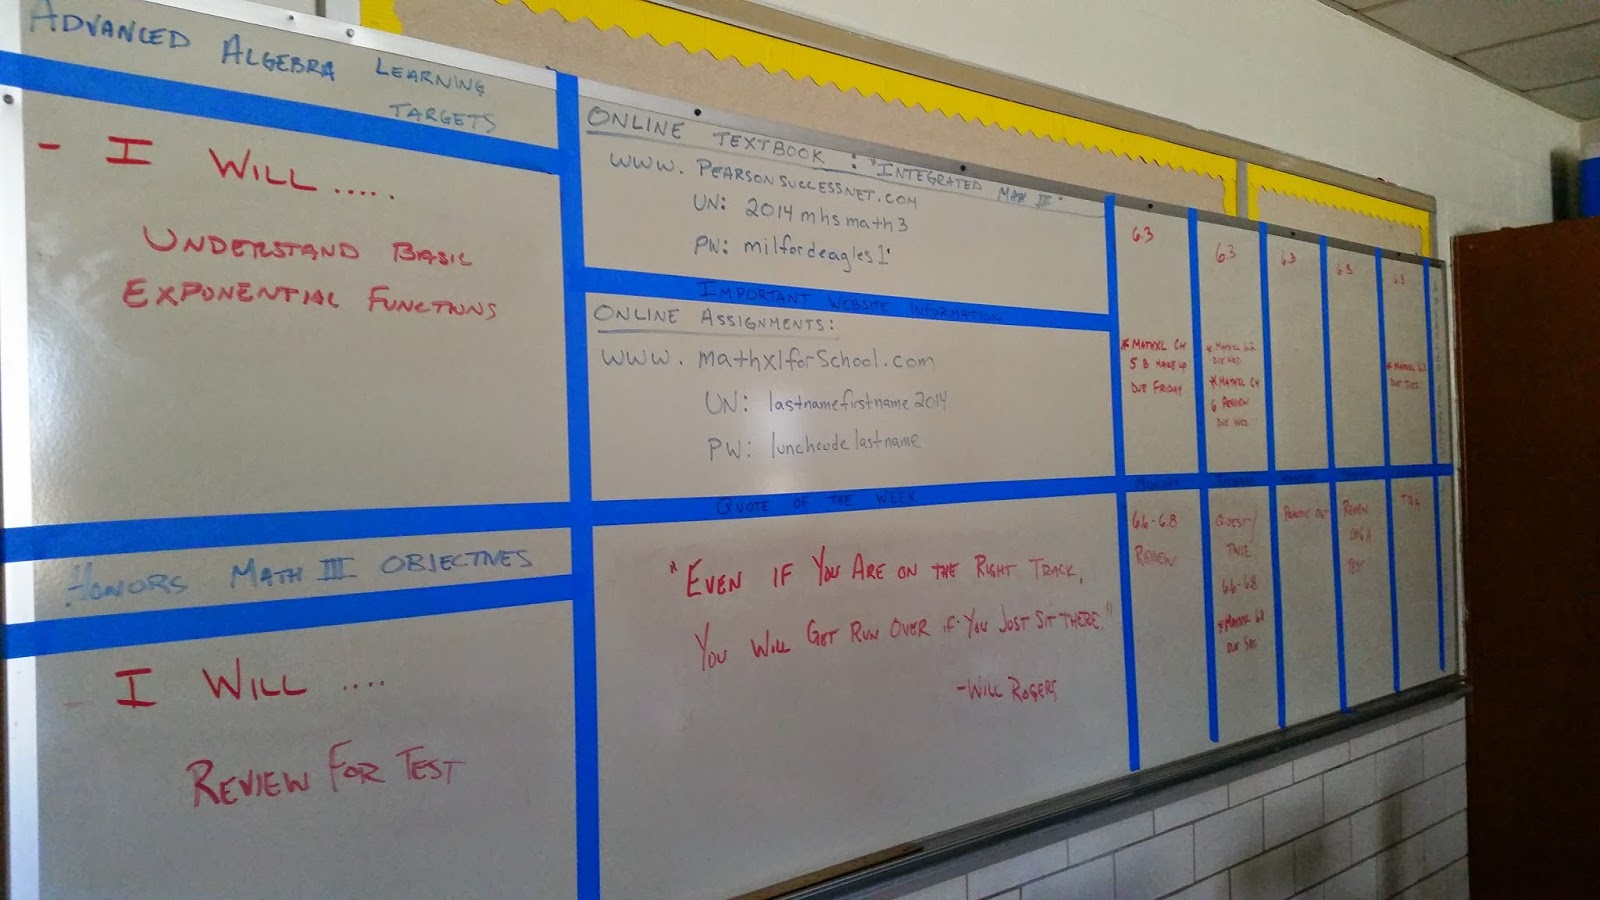 Classroom Decoration Whiteboard ~ With a new classroom comes decorations